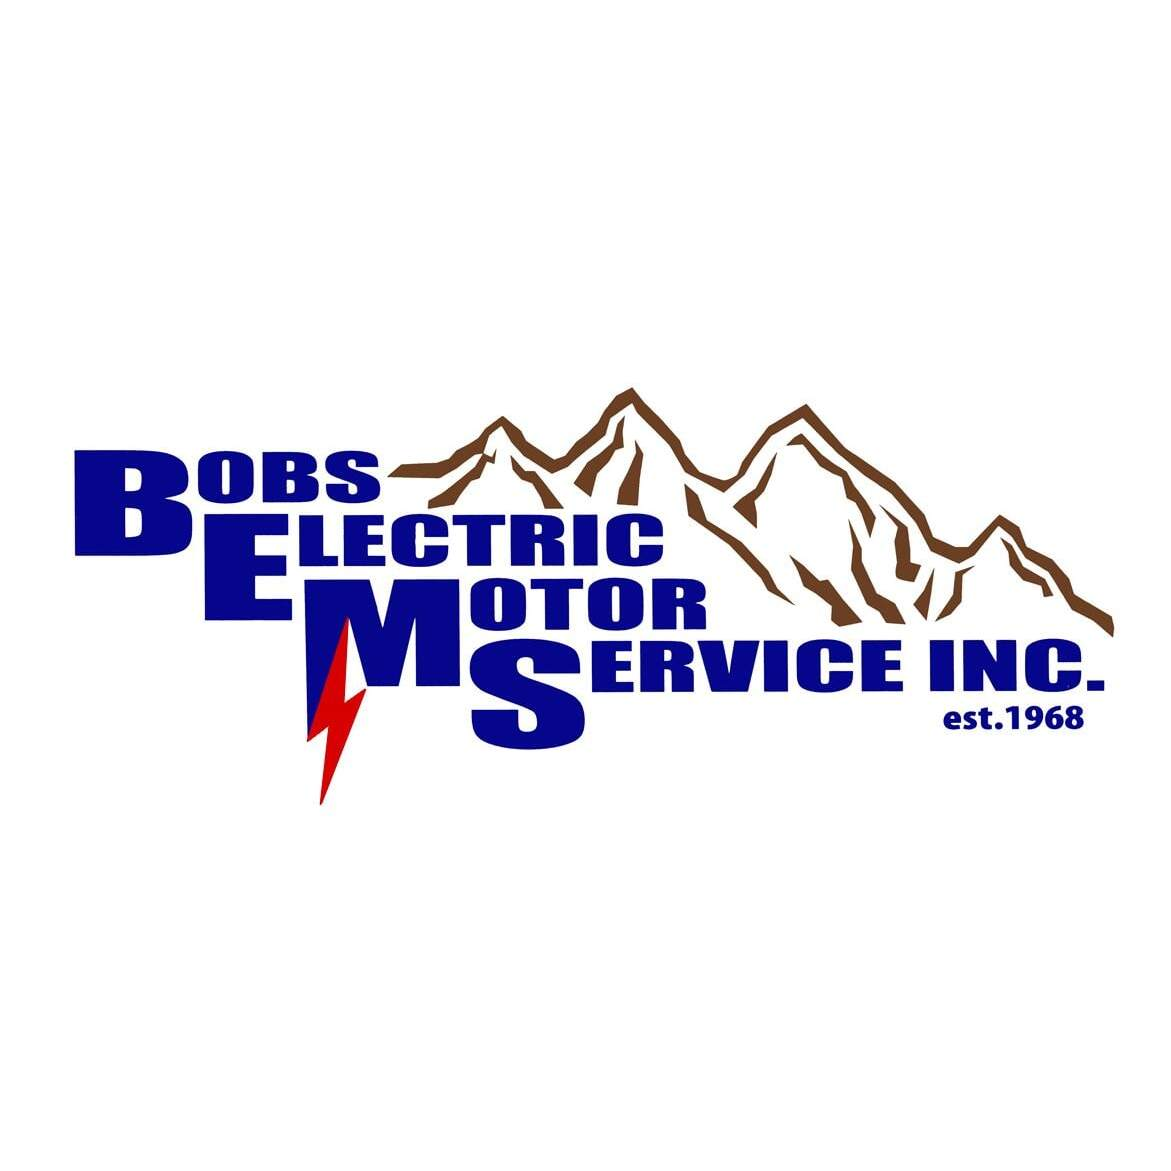 Bob's Electric Motor Service, Inc.